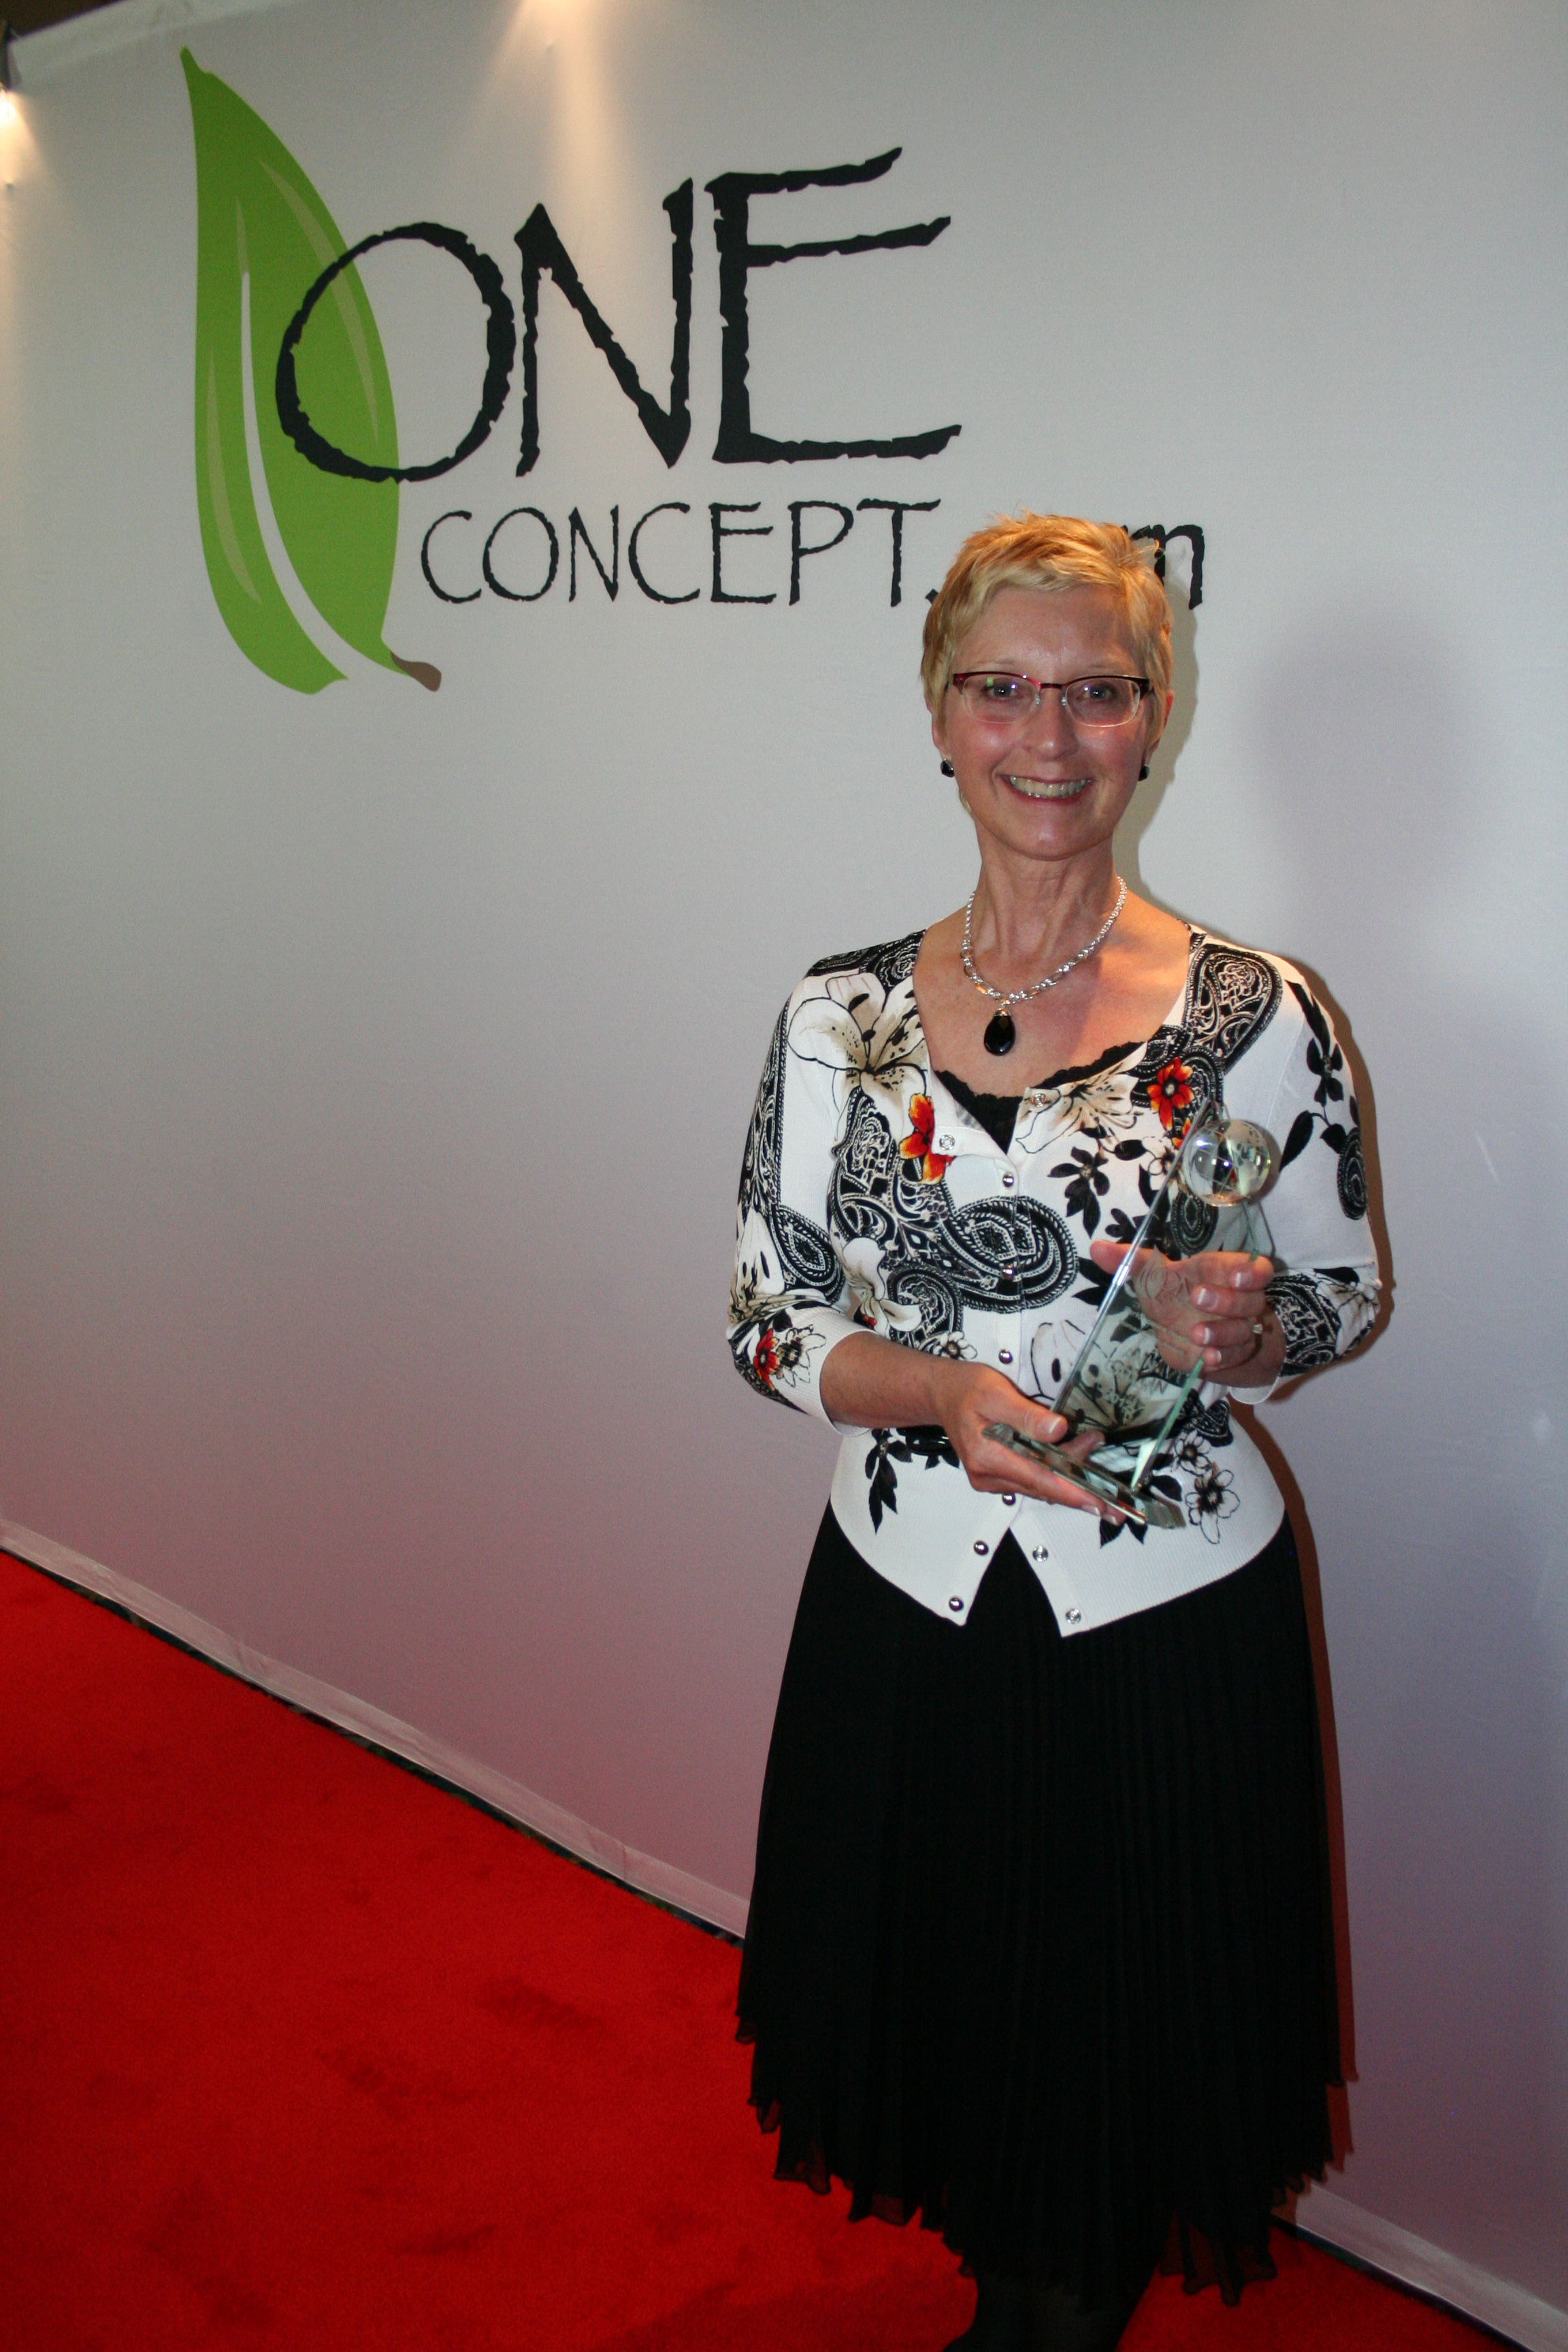 Ann Catlin Receives the 2012 One Concept Humanitarian Award, MASSAGE Magazine